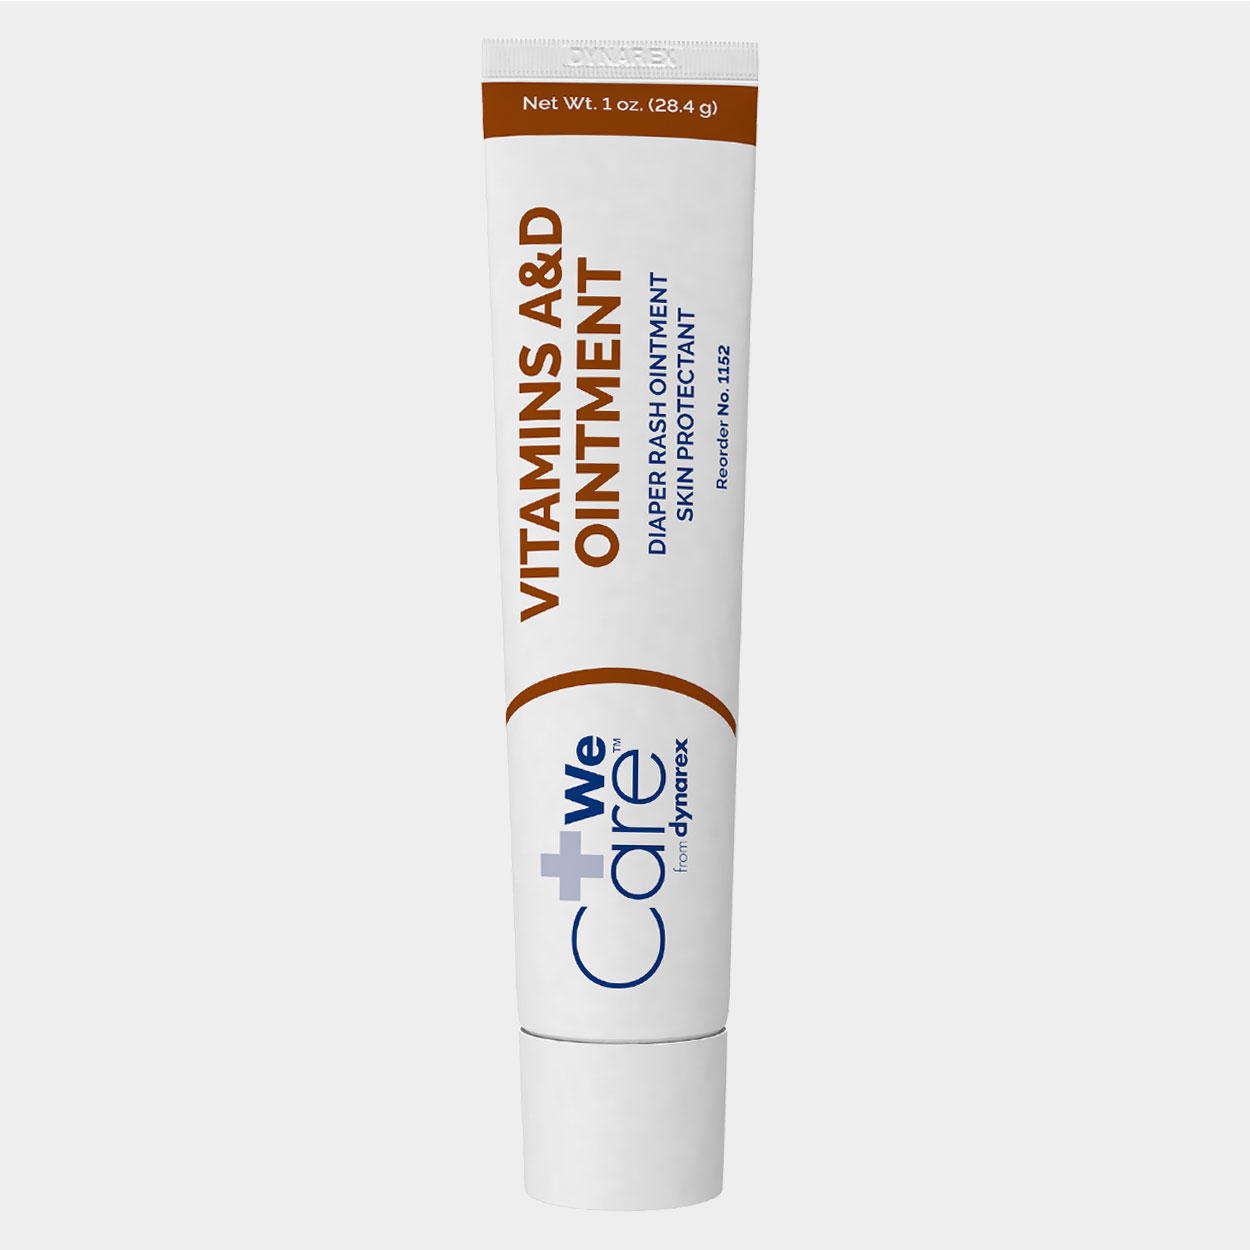 A&D Ointment - 4oz tube - Tattoo aftercare - Skin care - Medical Supply - Killer Silver